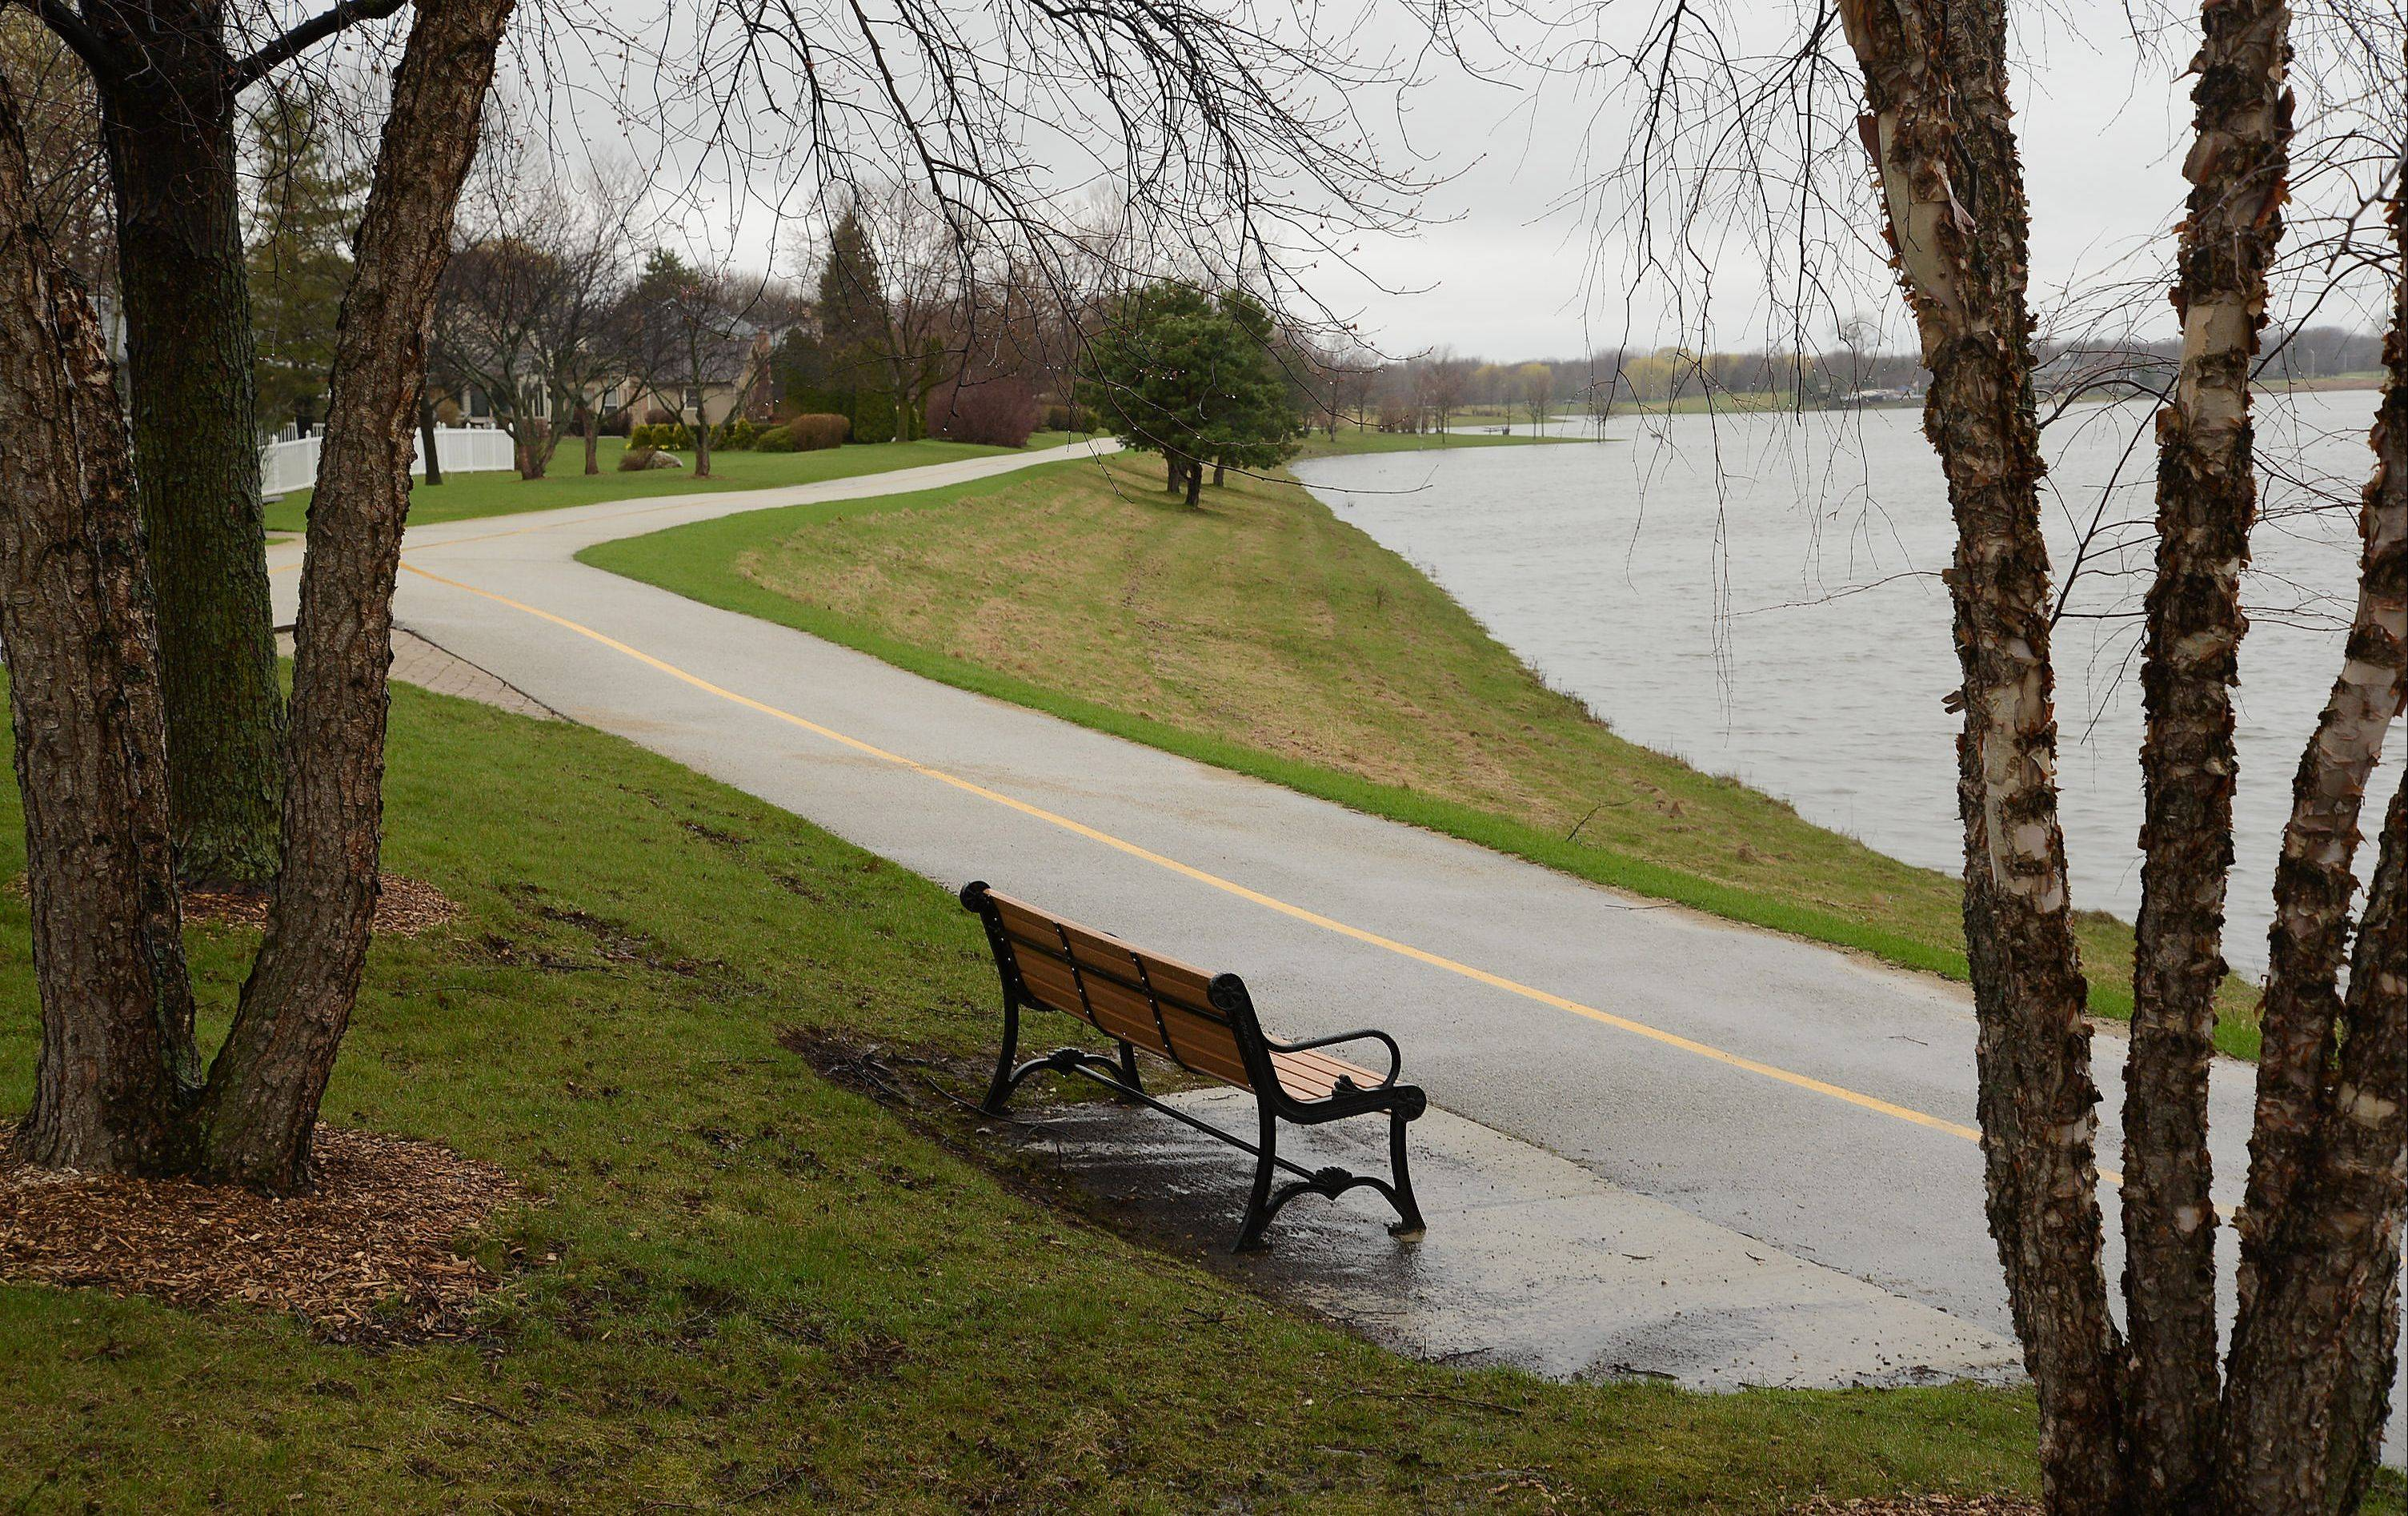 Lake Arlington trail safety will be looked at, officials say